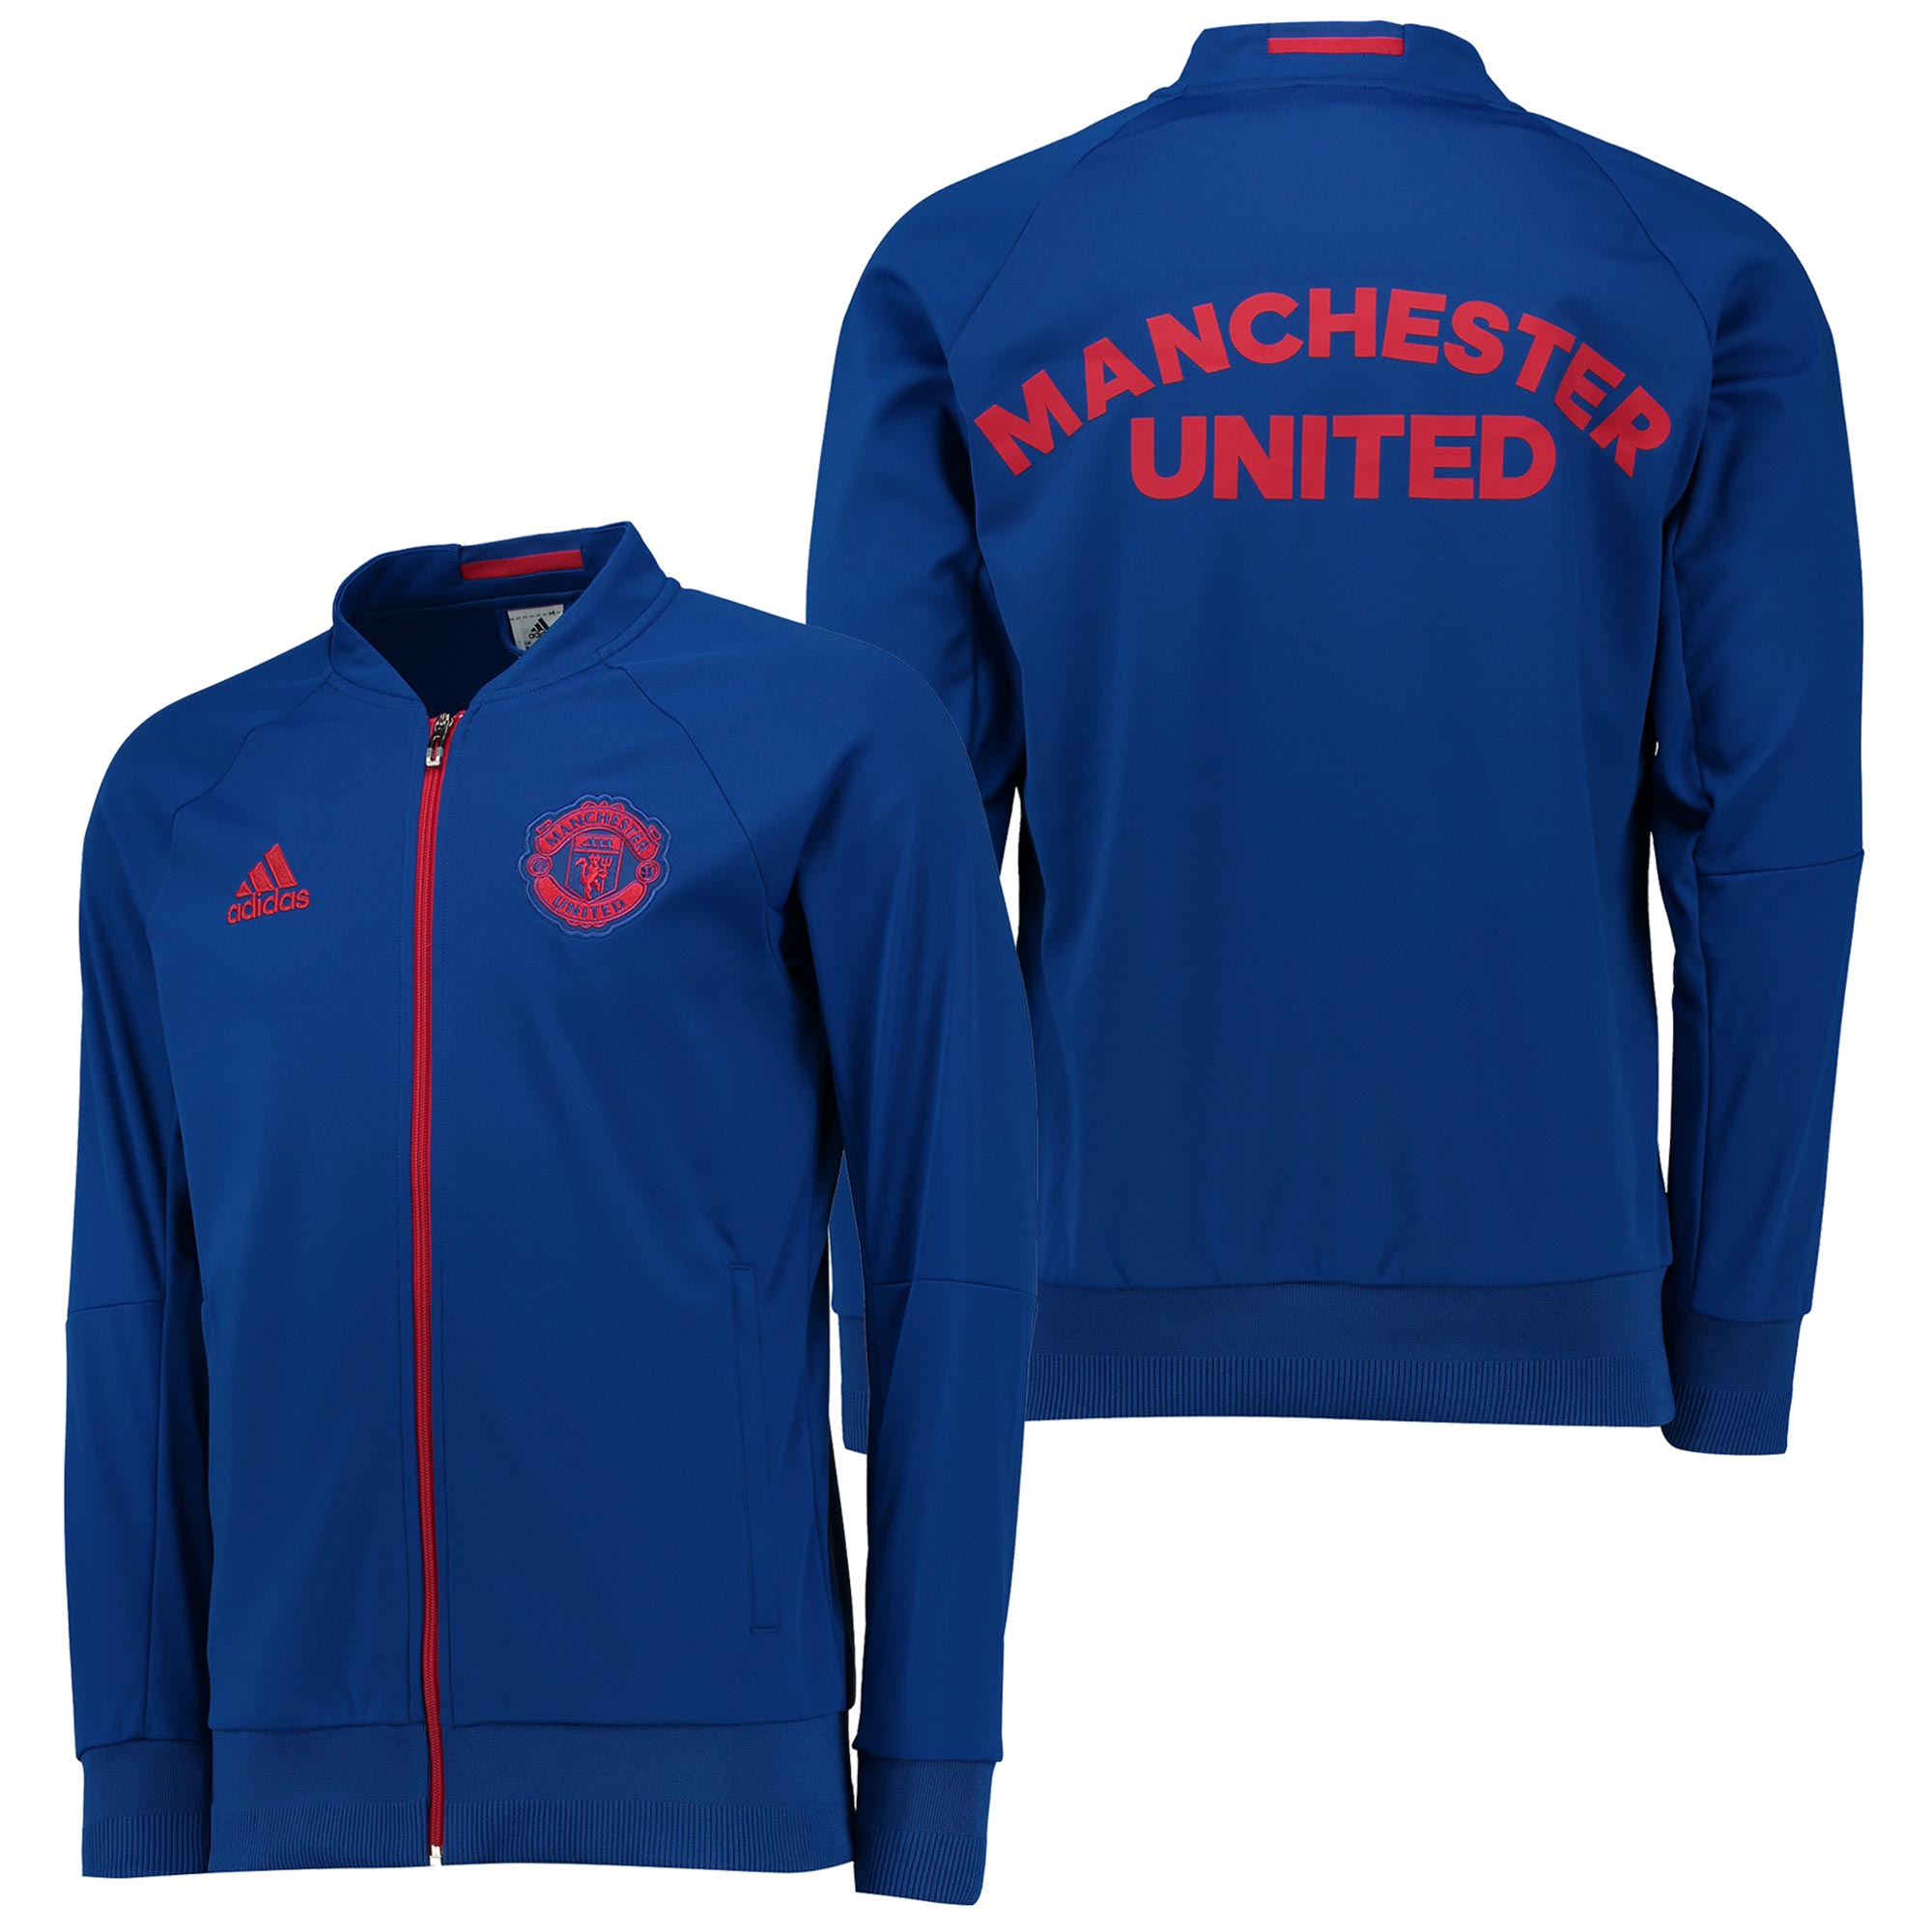 Manchester United Anthem Jacket - Royal Blue